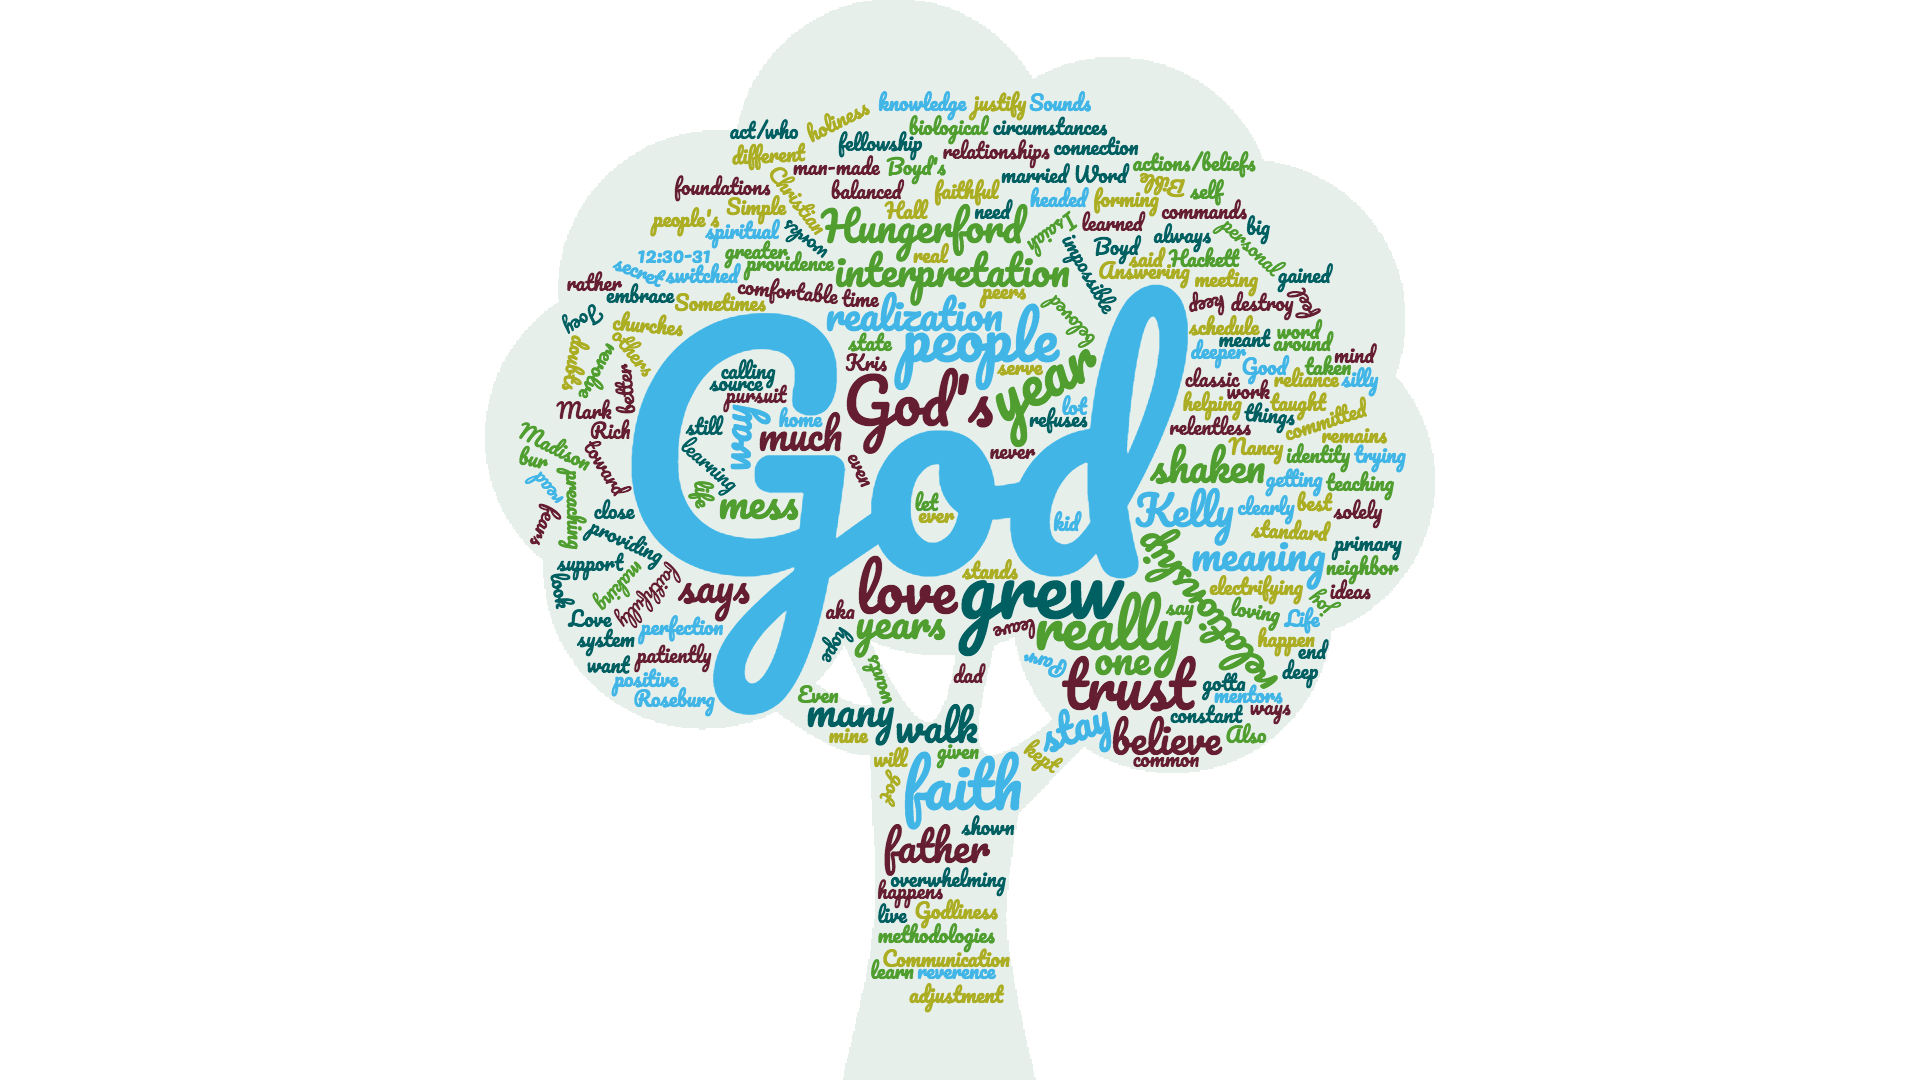 This word cloud is generated by the above quotes. the more frequent a word is used, the larger it appears.